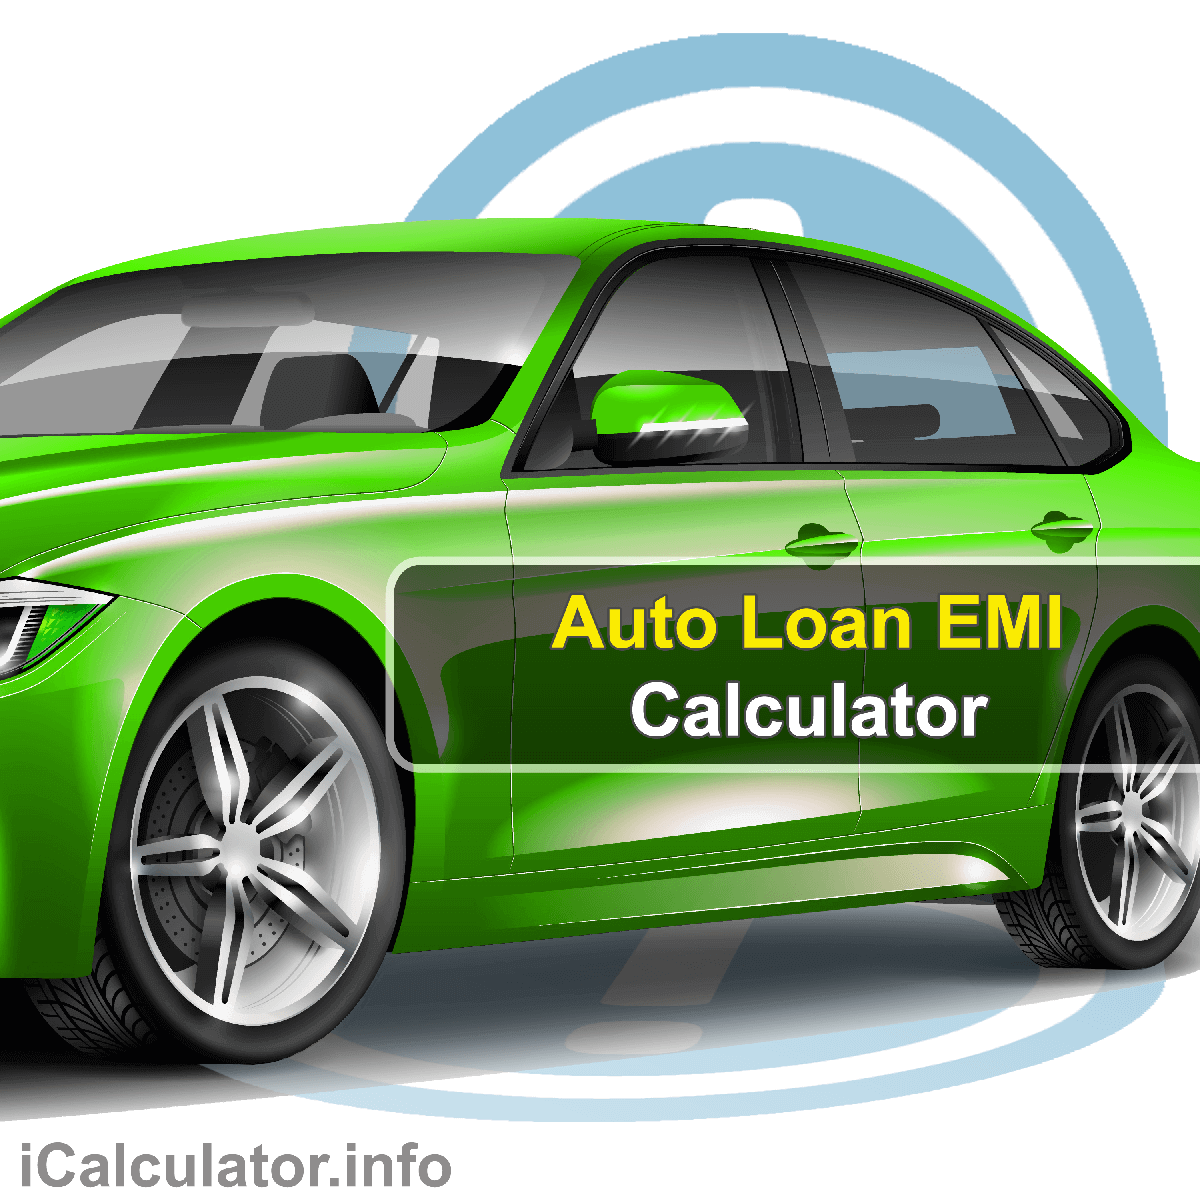 Auto Loan EMI Calculator. This image provides details of how to calculate auto loan EMI using a calculator and notepad. By using the EMI formula, the Auto Loan EMI Calculator provides a true calculation of the monthly repayments on your new or used car